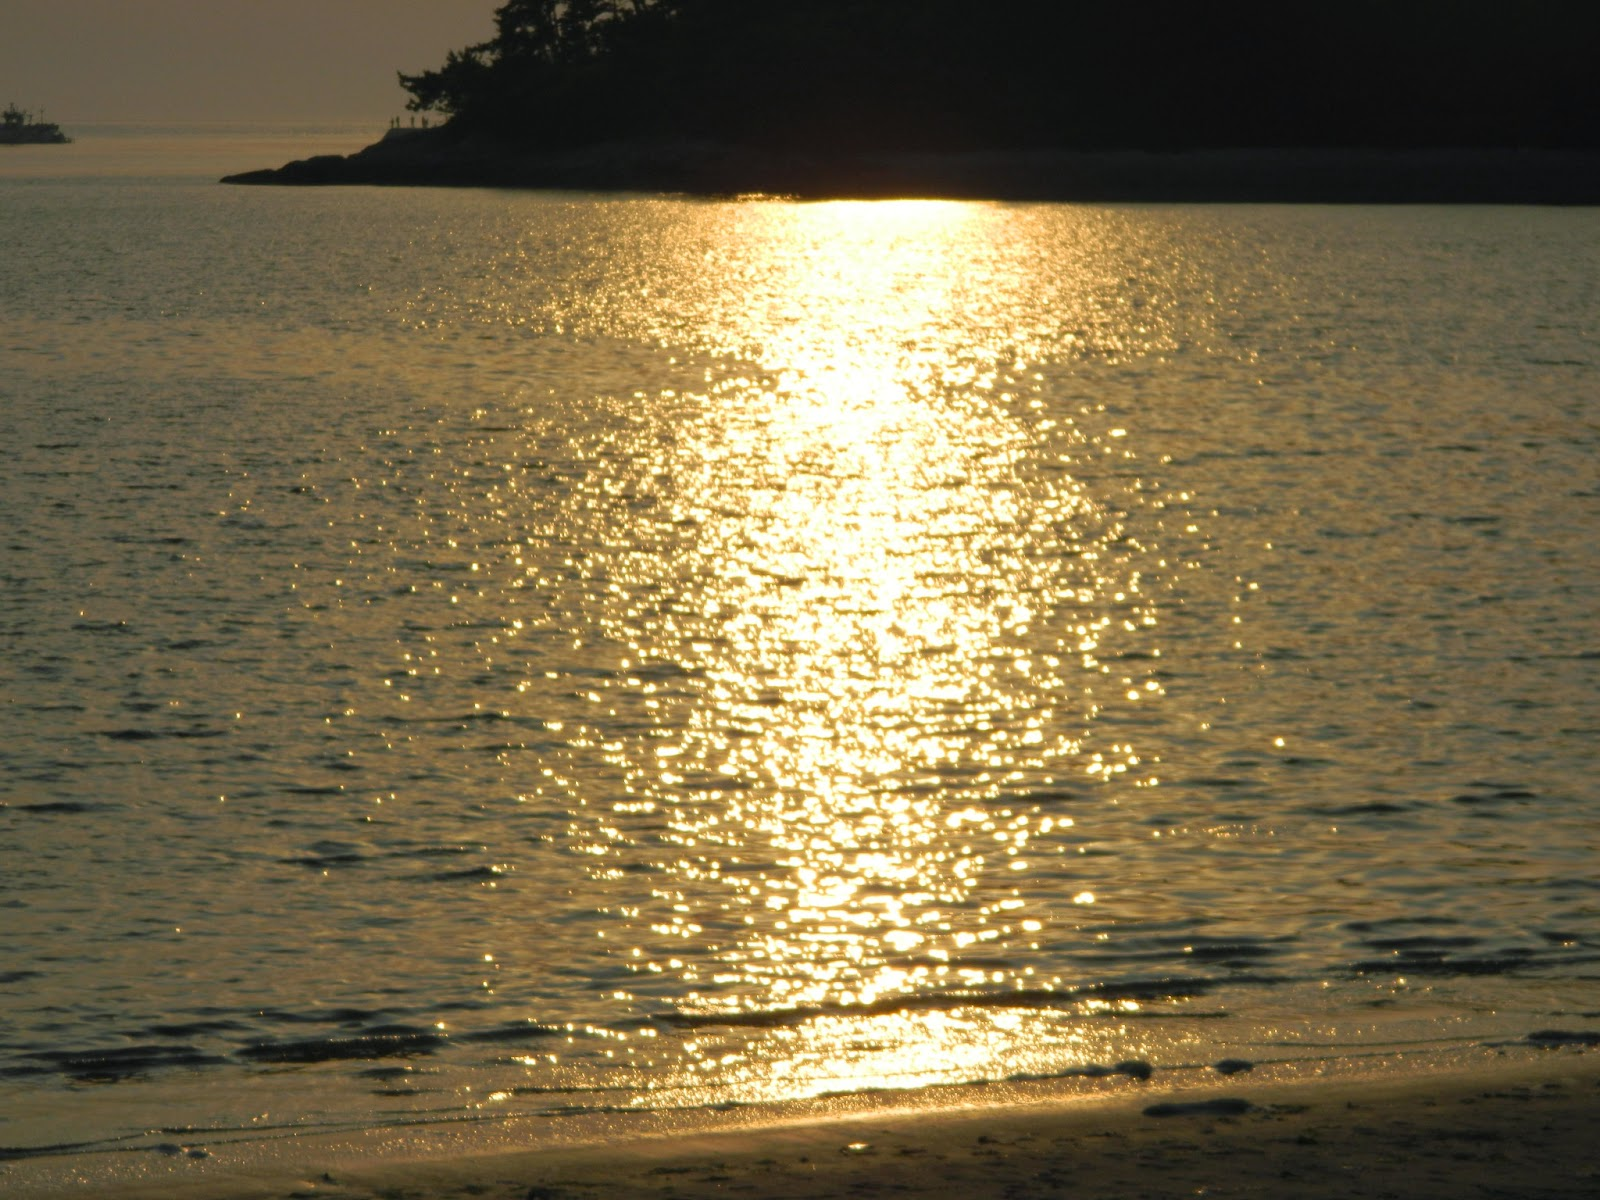 golden waters in Seonyudo island